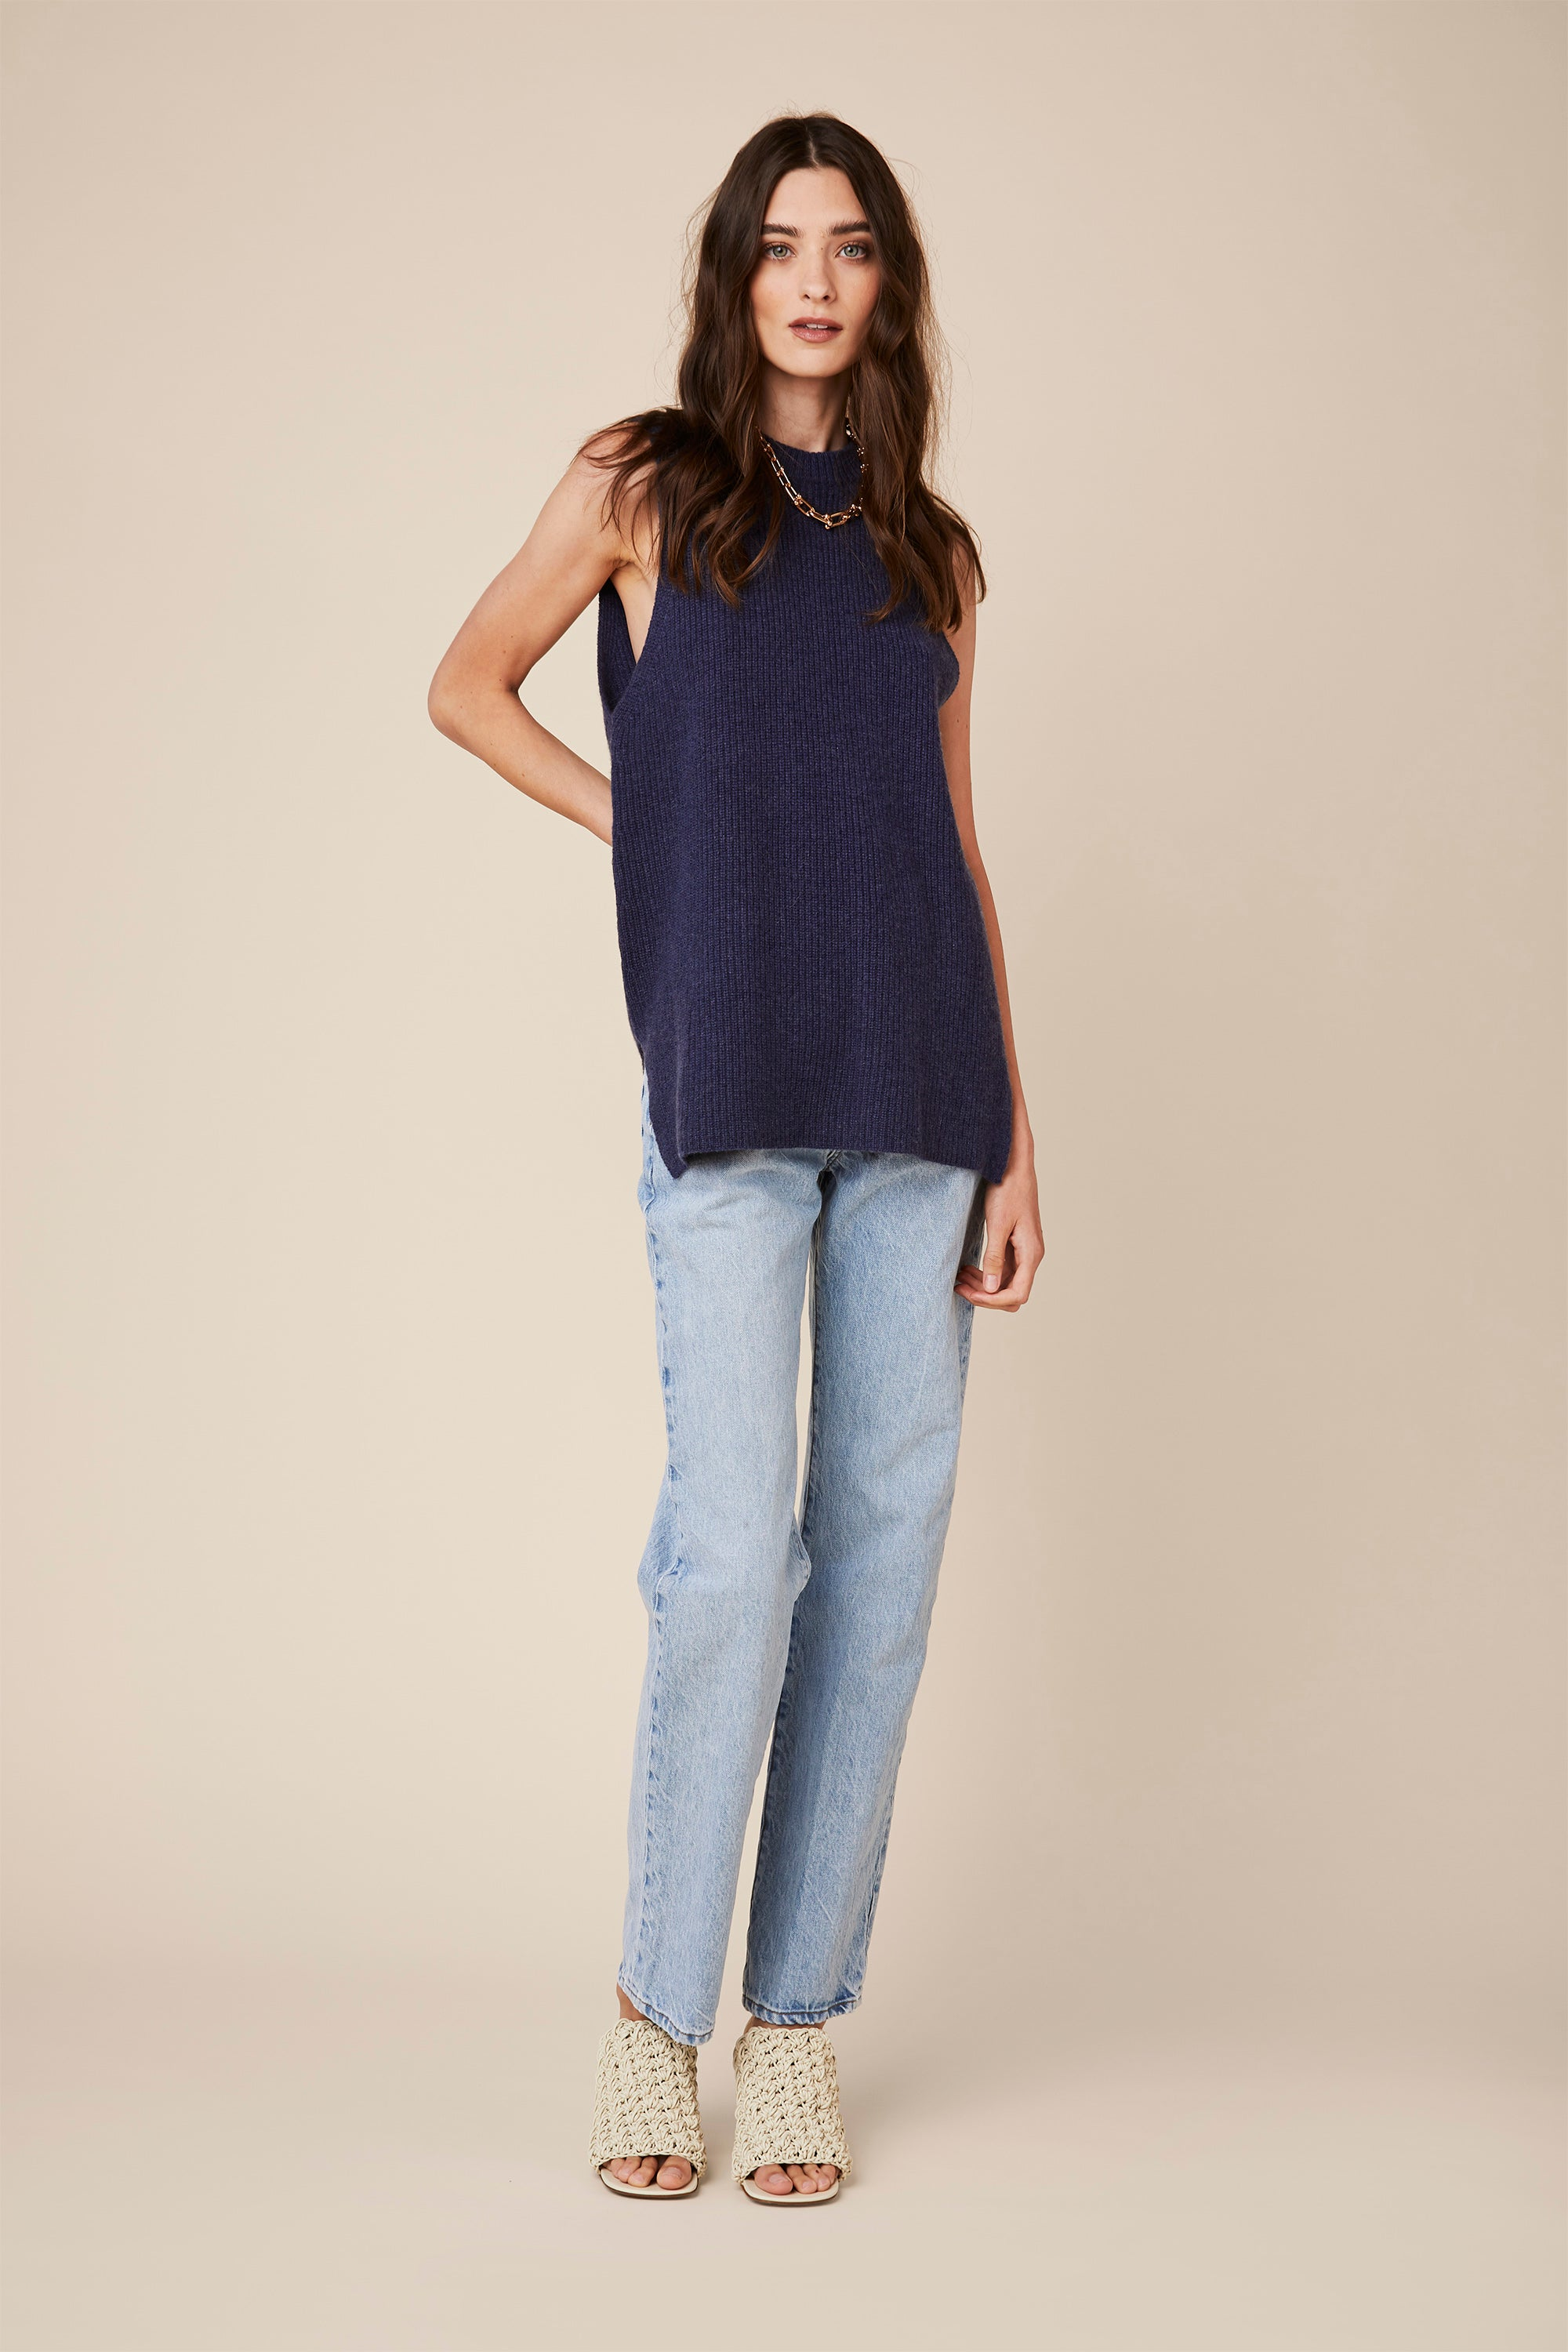 ASHLEY SLEEVELESS CASHMERE TOP | BLUE DENIM